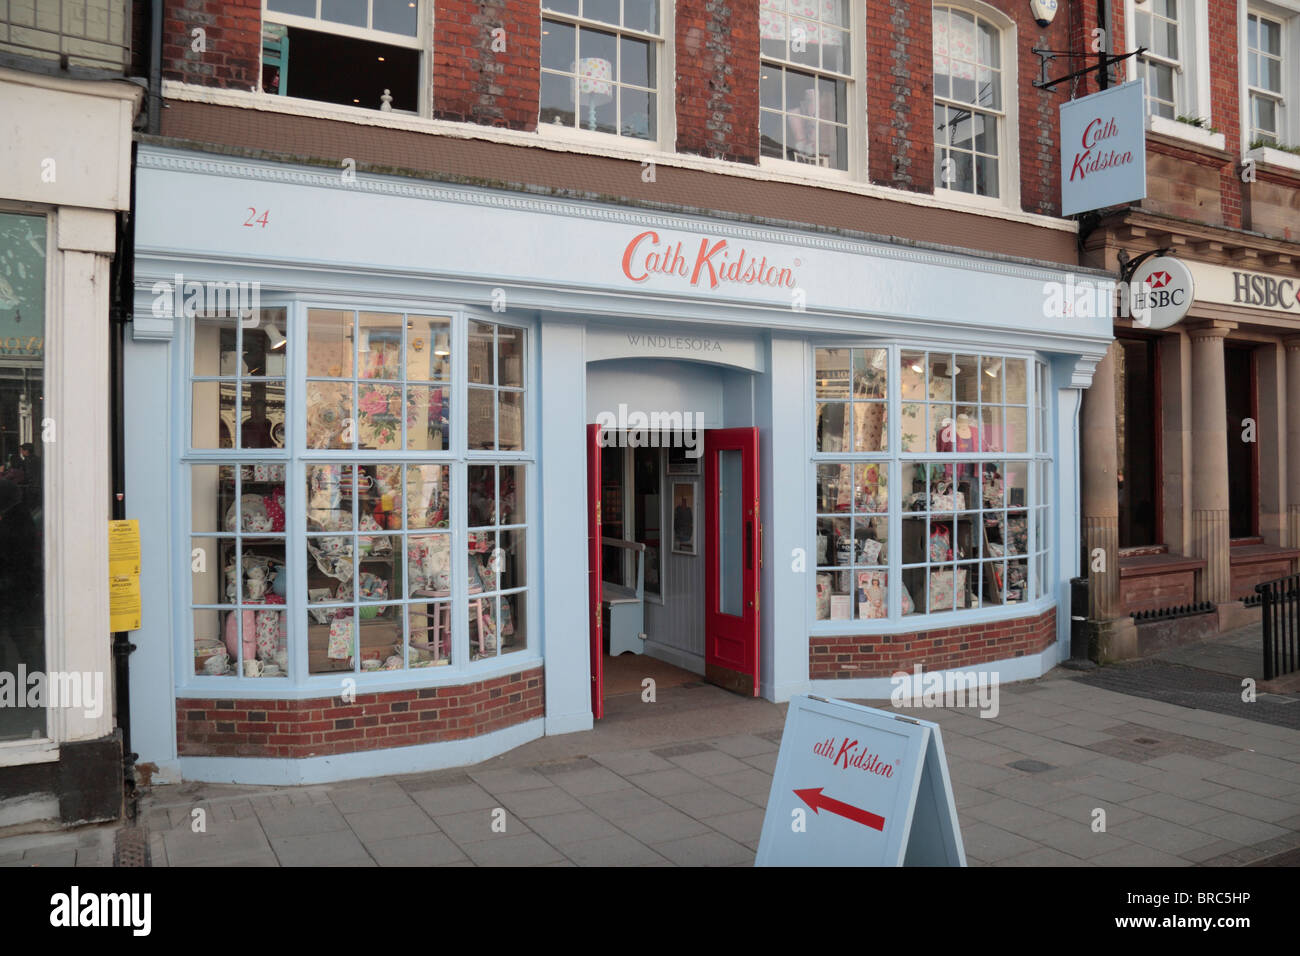 the shop front of the cath kidston store in windsor berkshire uk stock photo 31615298 alamy. Black Bedroom Furniture Sets. Home Design Ideas